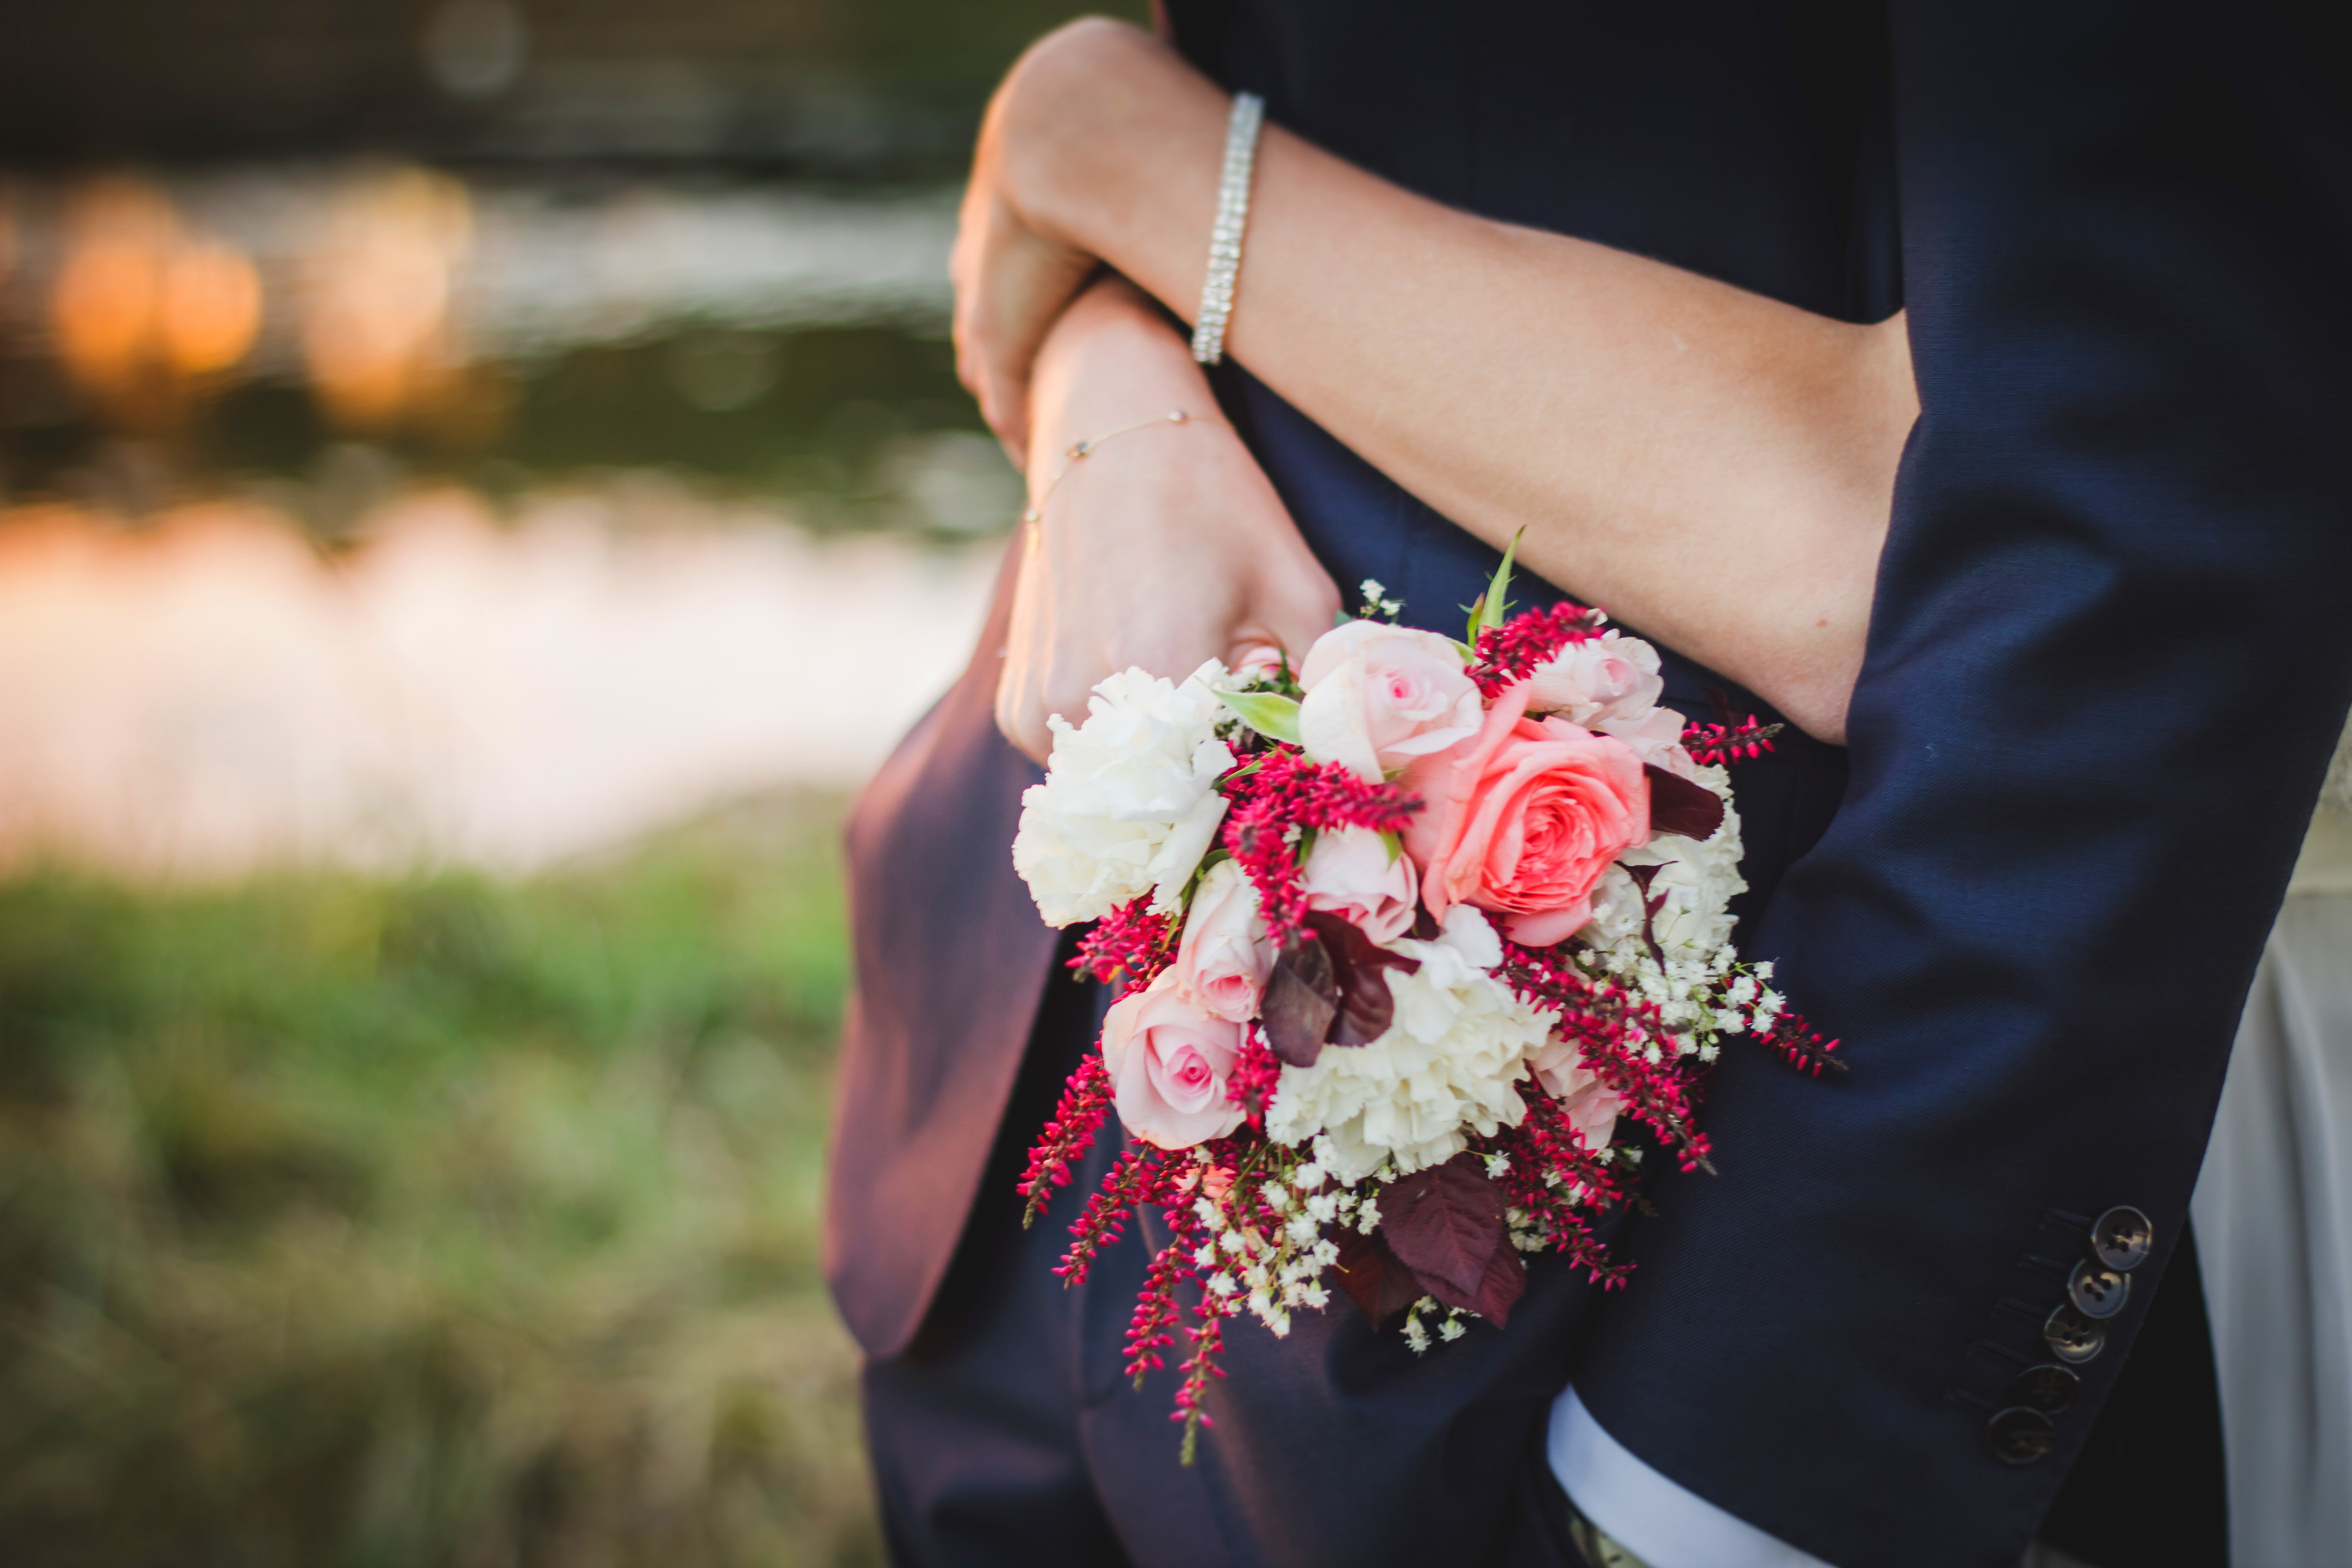 Woman with arms wrapped around a man with bouquet flowers image free izmirmasajfo